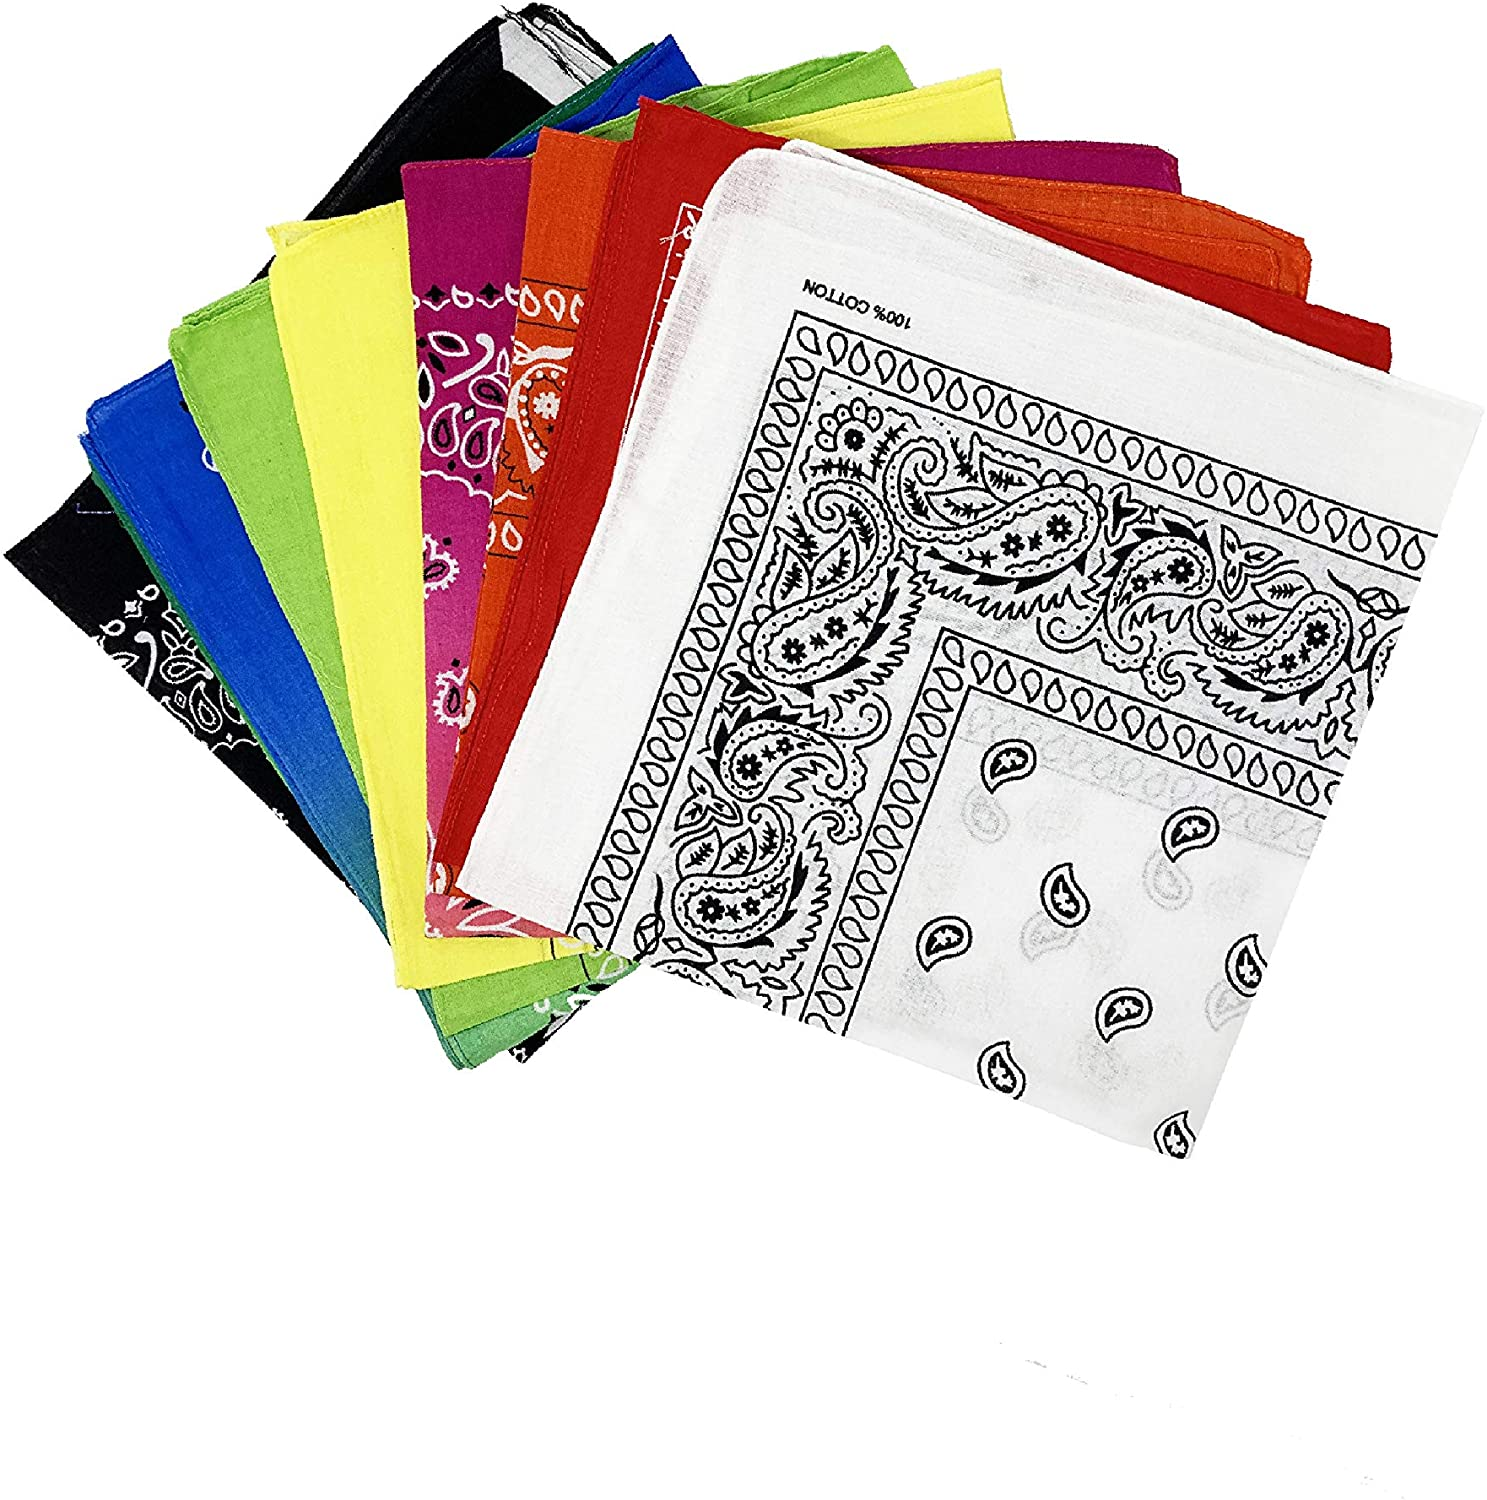 Pieced Together | Assorted Novelty Paisley Print Bandanas | 7 Piece | Double-Sided | 22 in x 22 in